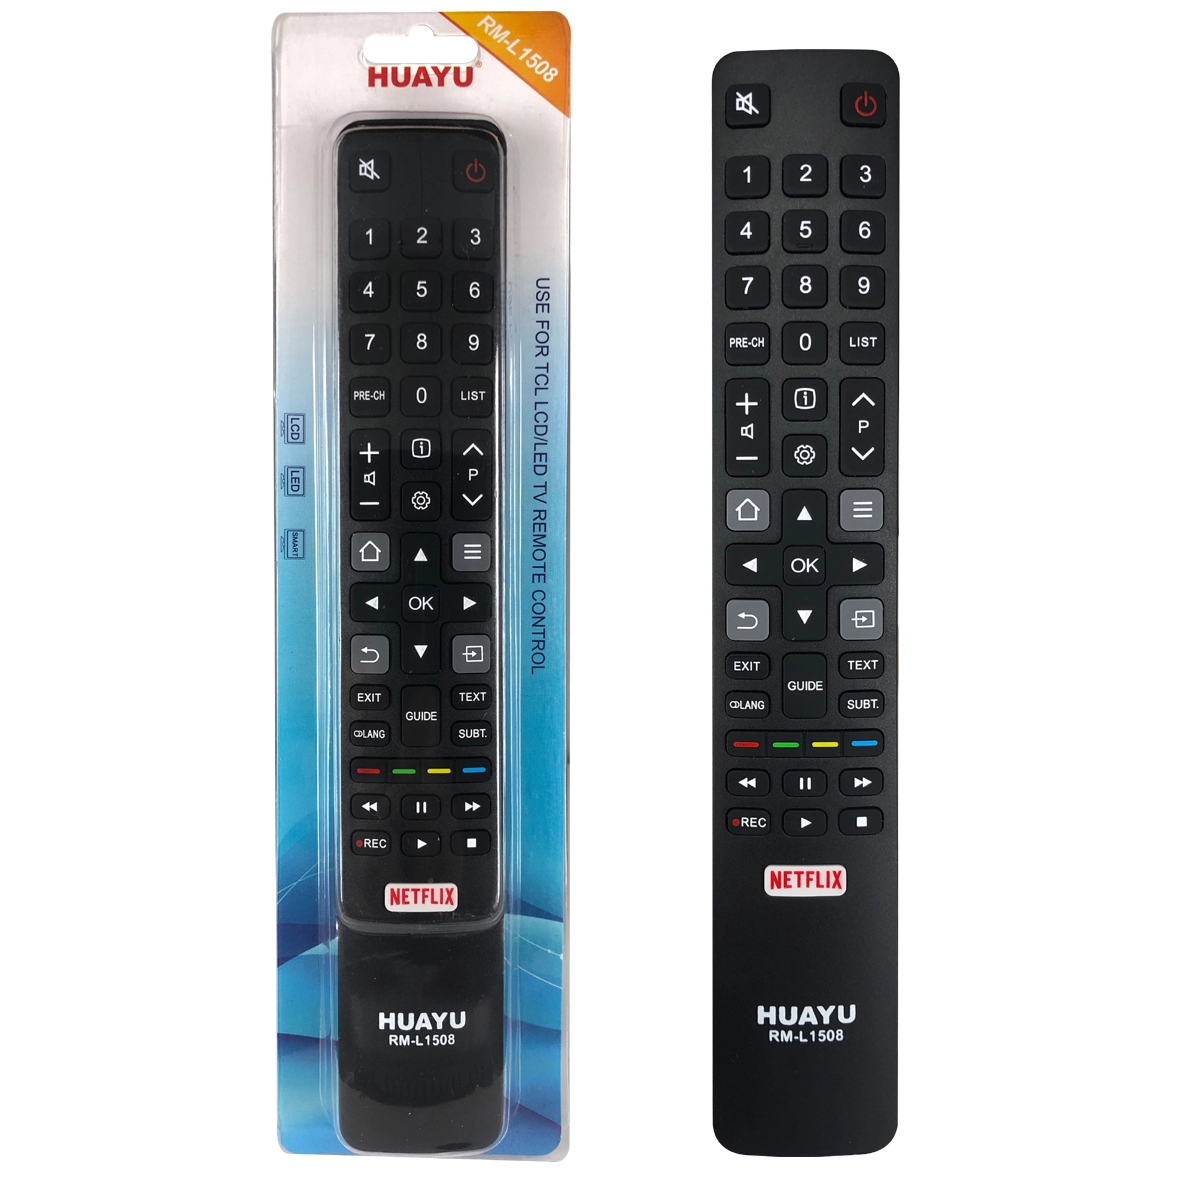 HUAYU RM-L1508+ TCL TV Remote – Works with All TCL televisions (LED,LCD,Plasma) – Ideal TV Remote Control with Same Functions as The TCL Remote - Black3